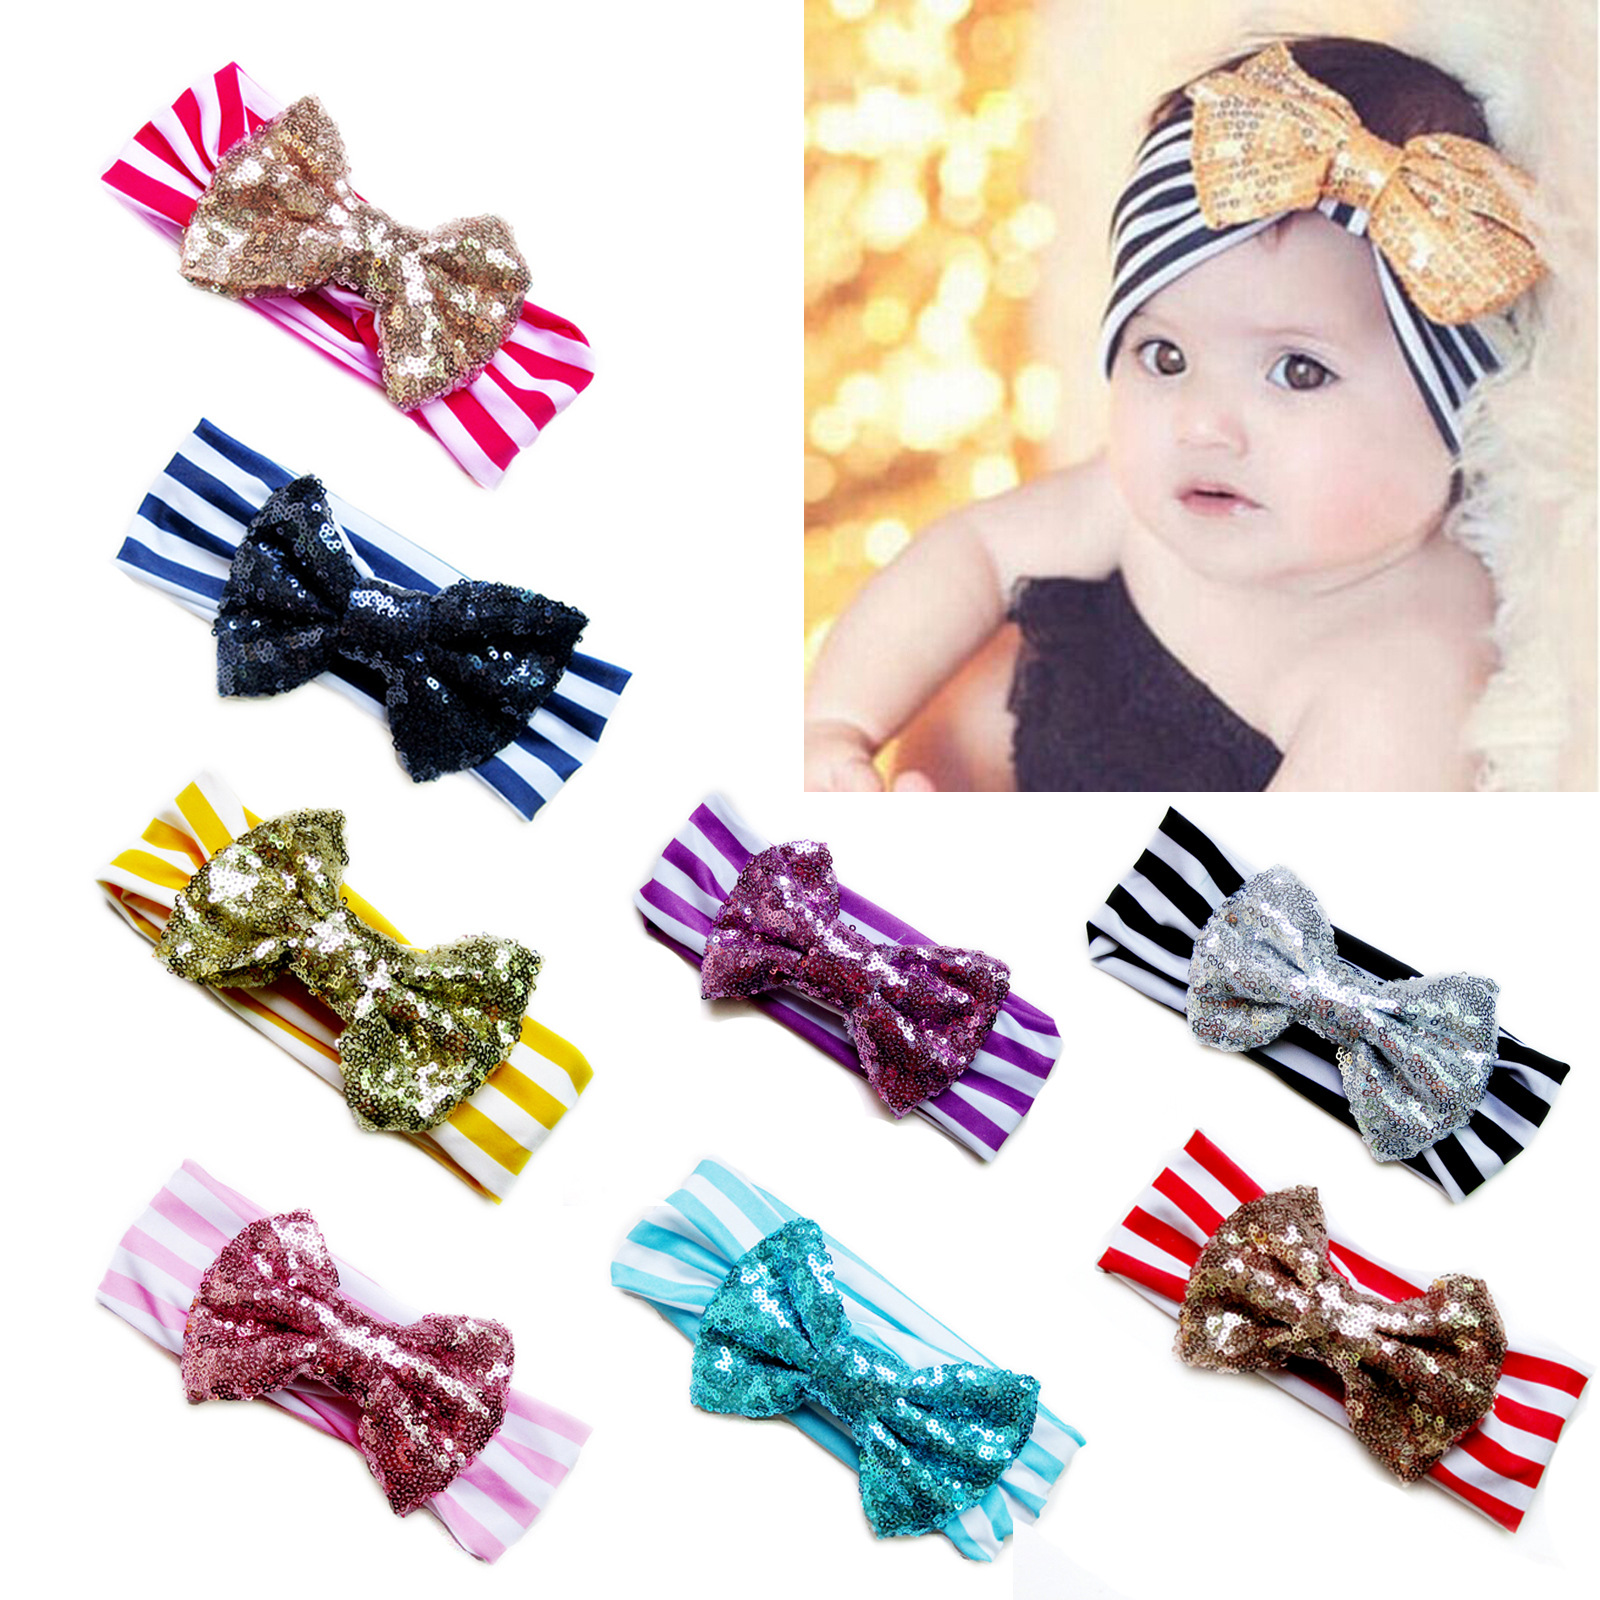 Baby Girl Hair Accessories 1PCS Best Deal 2016 Fashion Children Cute Sequins Bow Baby Girls Headband Headwears